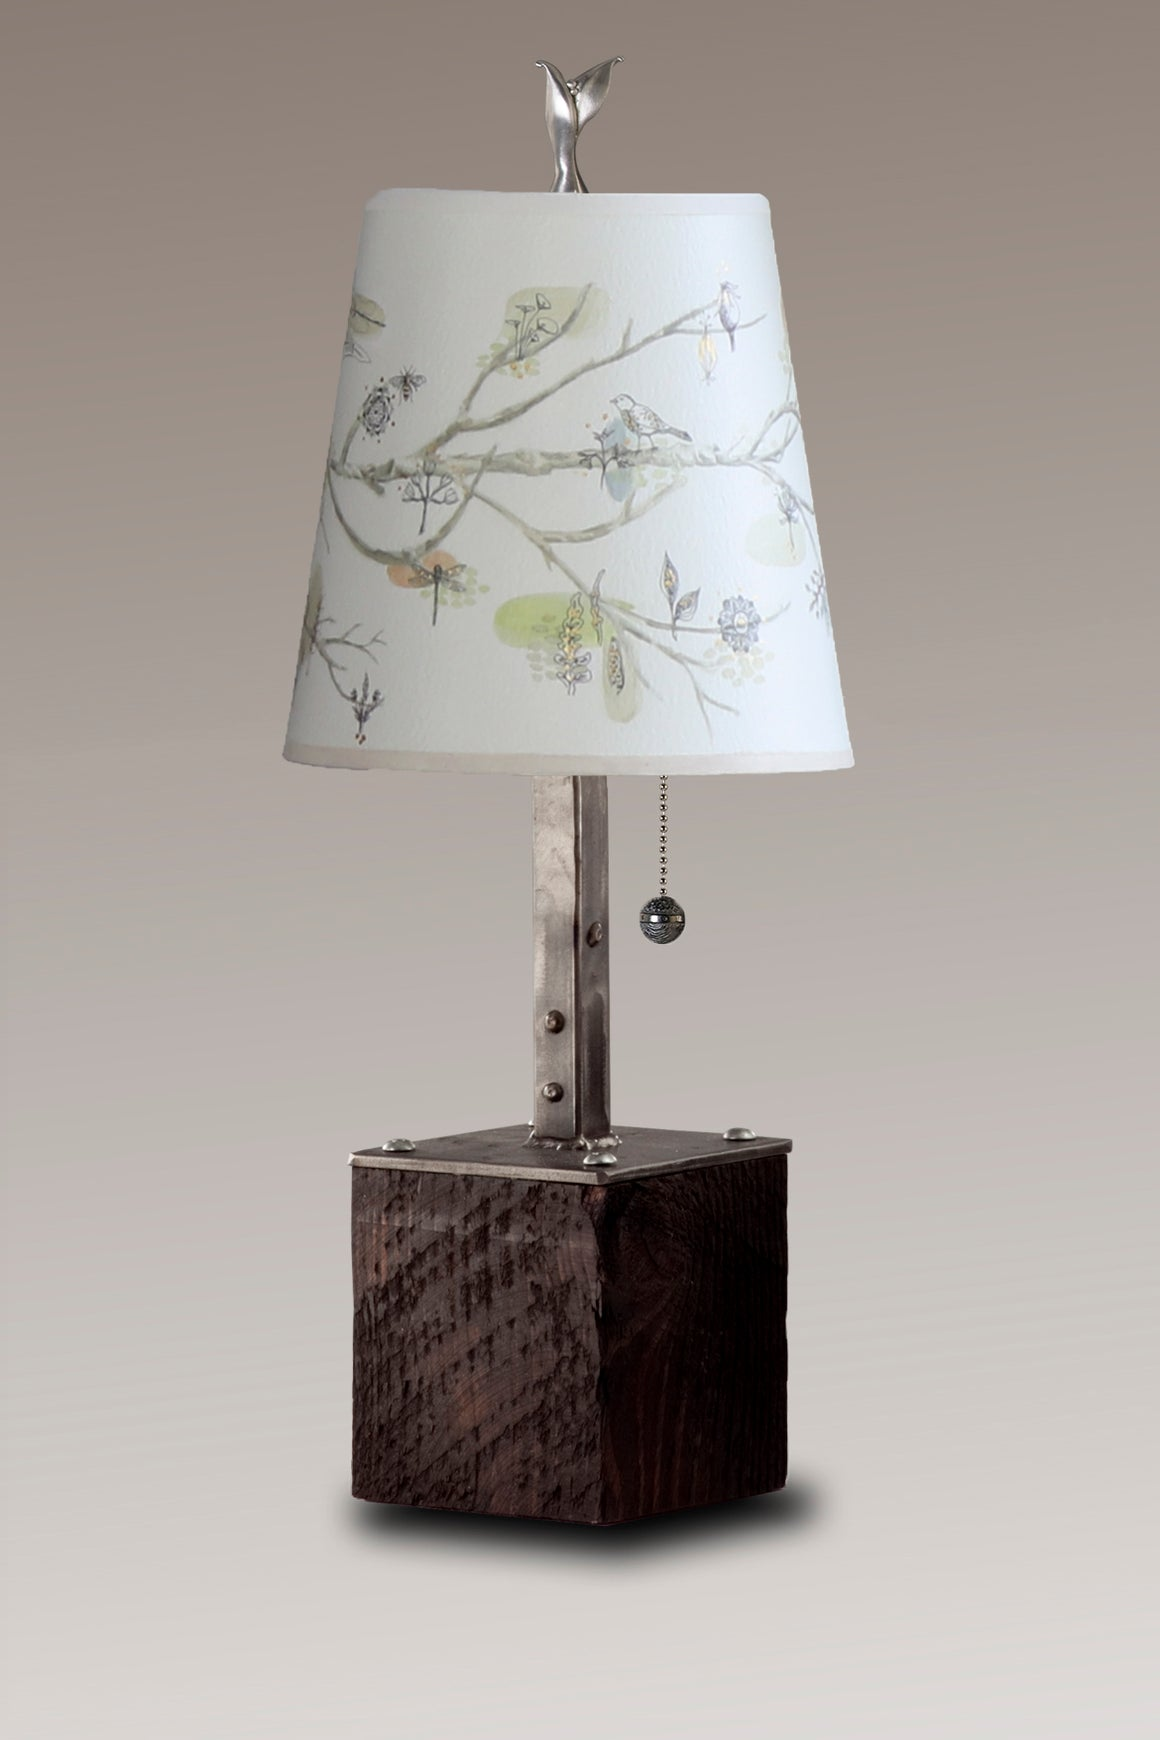 Steel Table Lamp on Reclaimed Wood with Small Drum Shade in Artful Branch